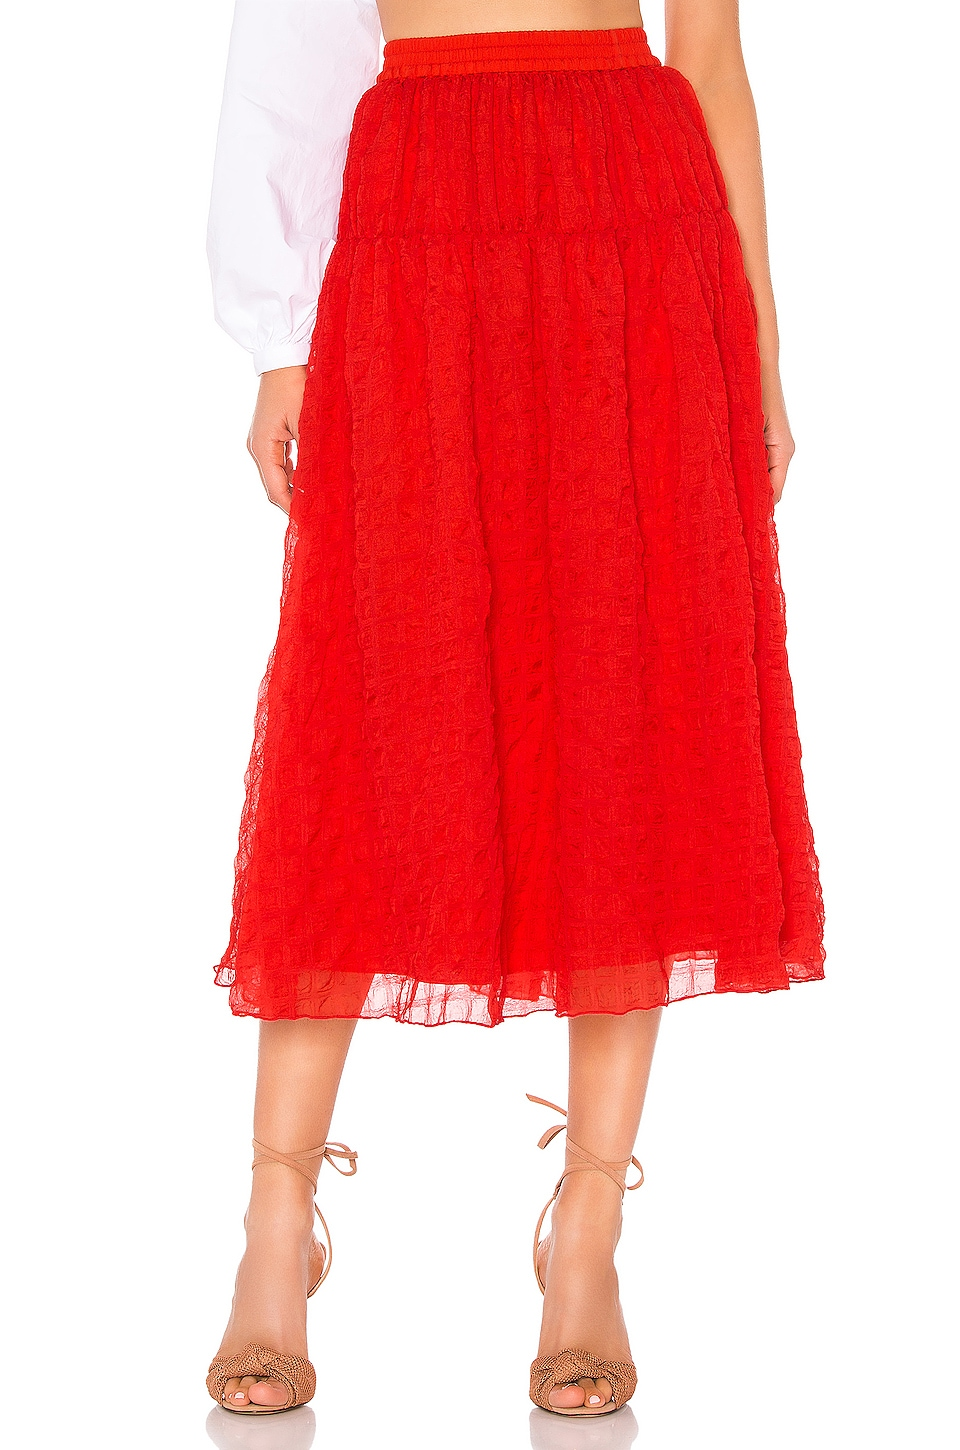 L'Academie The Jacques Skirt in Poppy Red